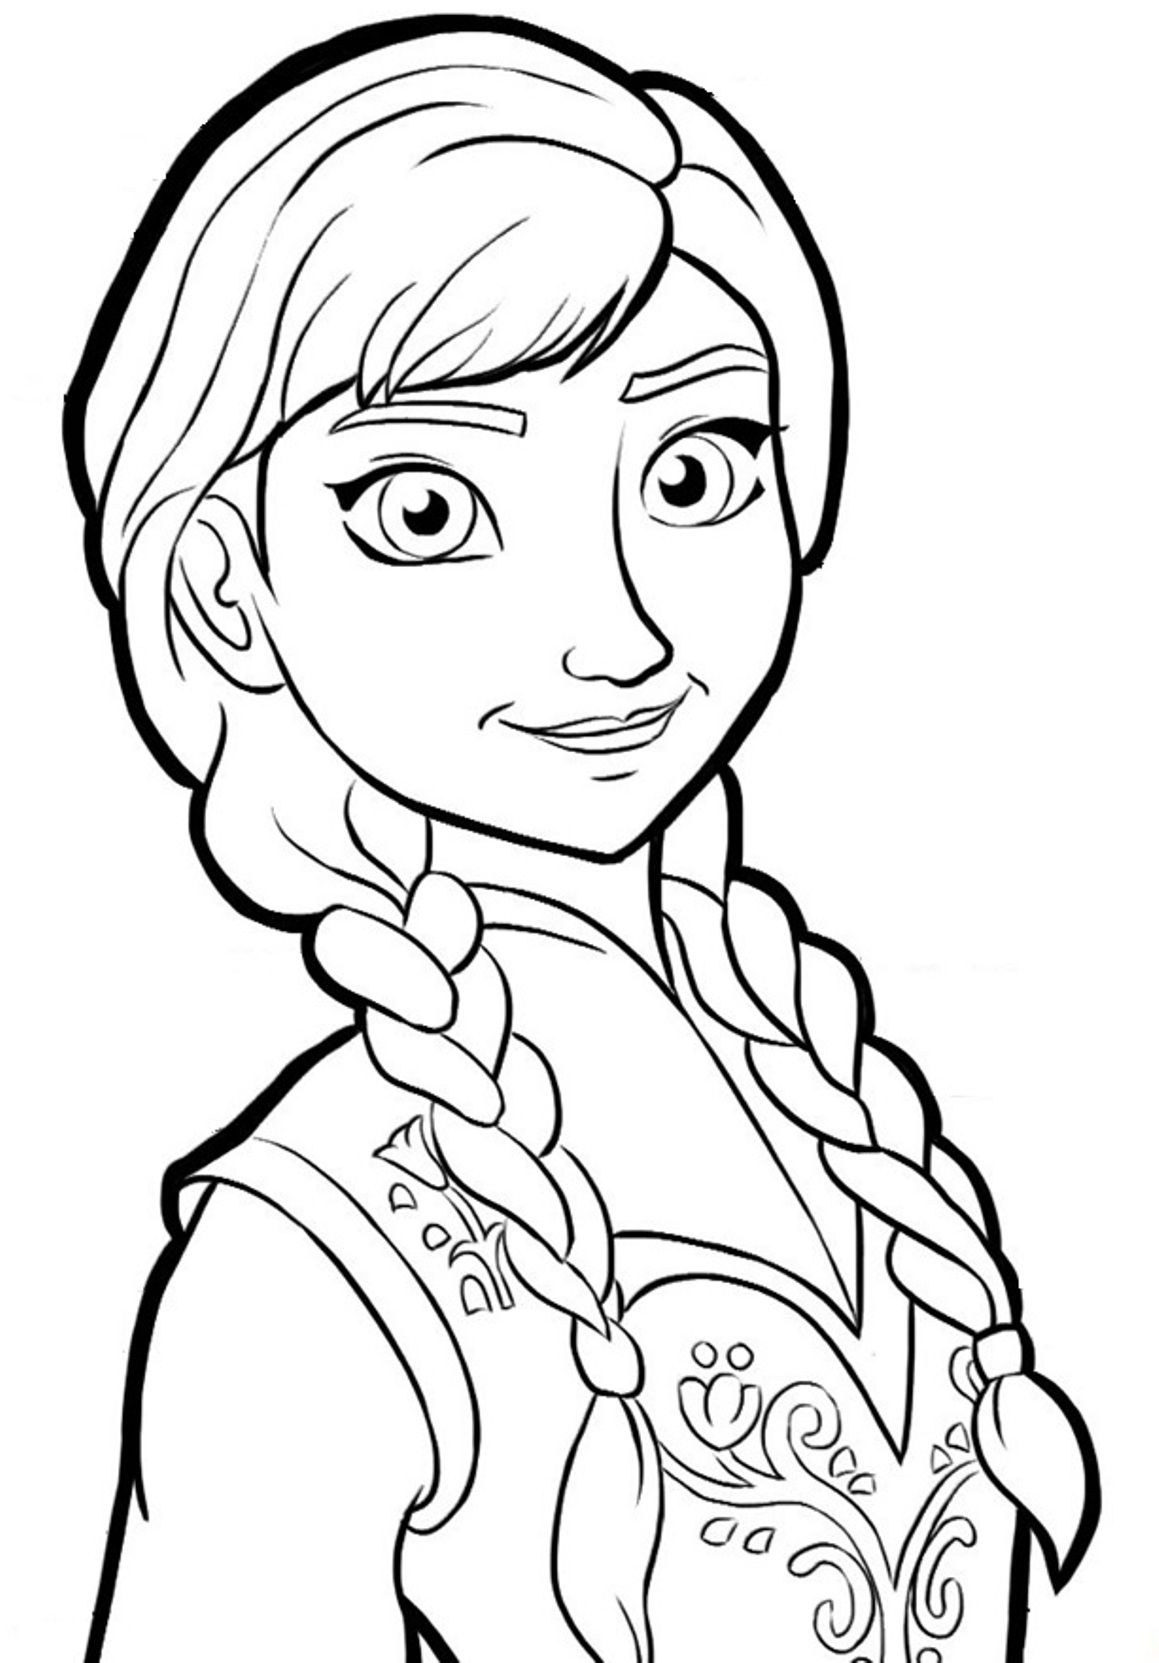 Download Coloring Page Anna Frozen Or Print Coloring Page Anna Elsa Coloring Pages Frozen Coloring Pages Frozen Coloring